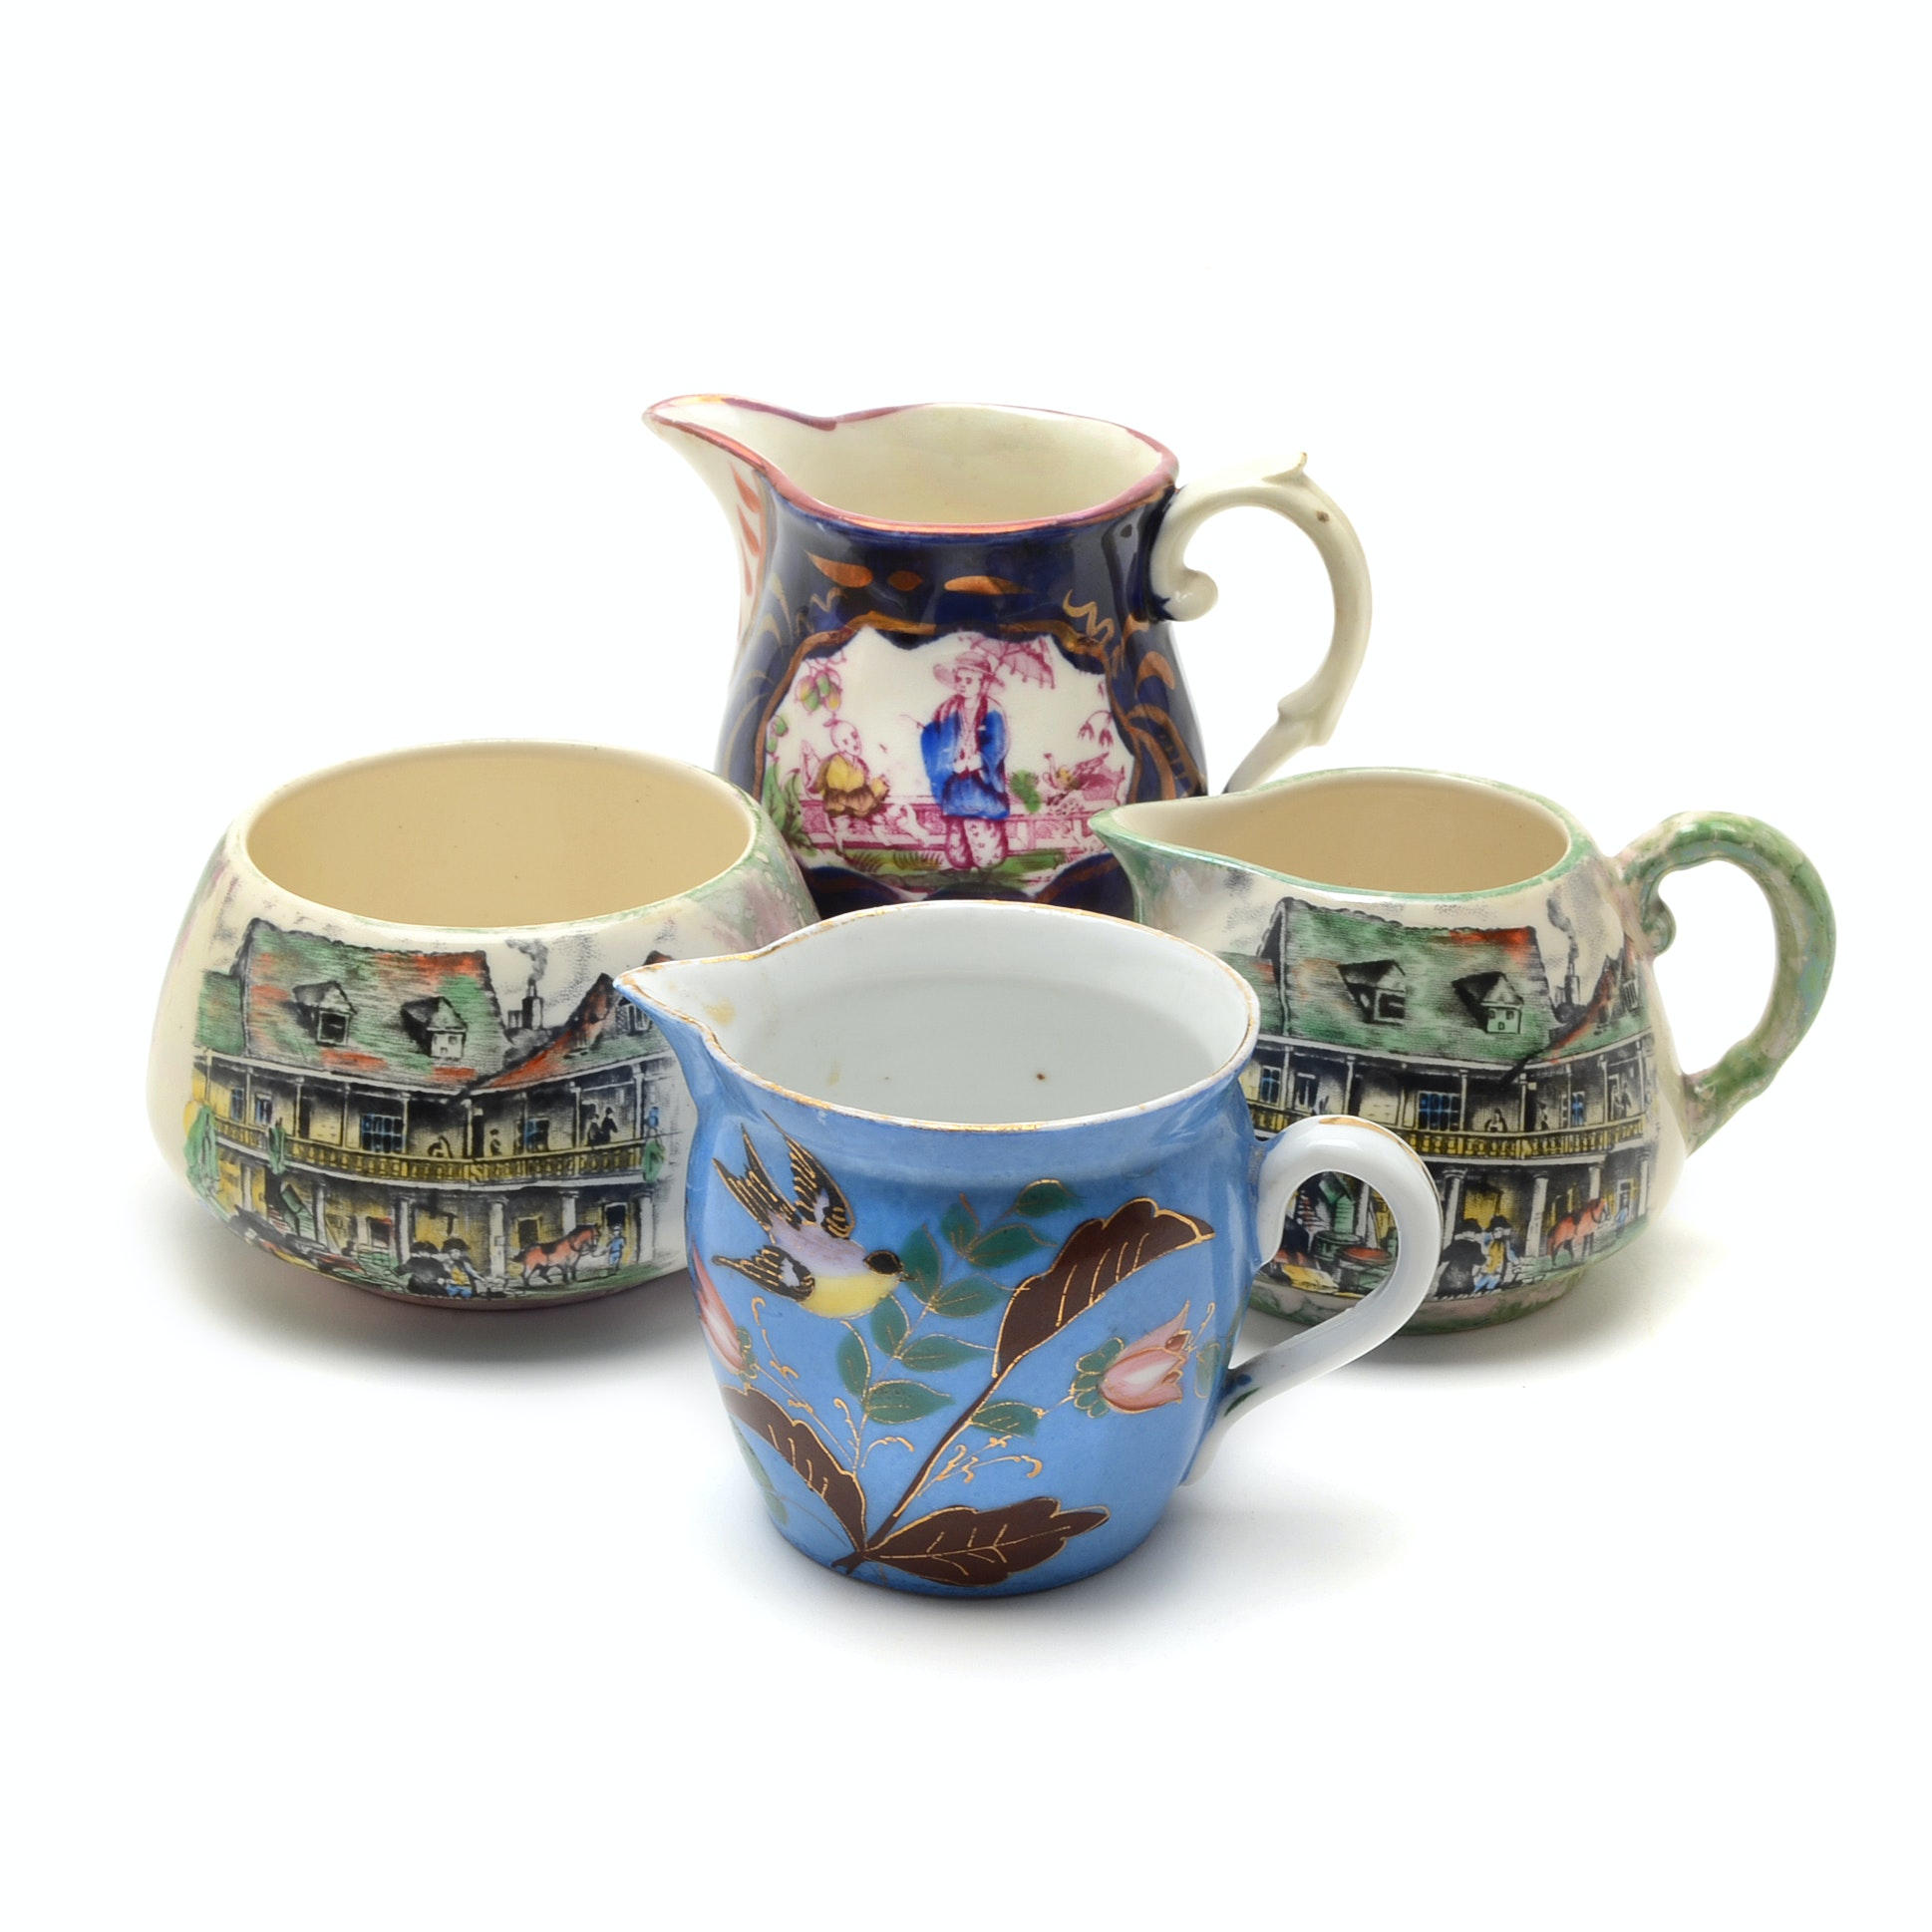 Collection of Porcelain and Pottery Pitchers and Sugar Bowl